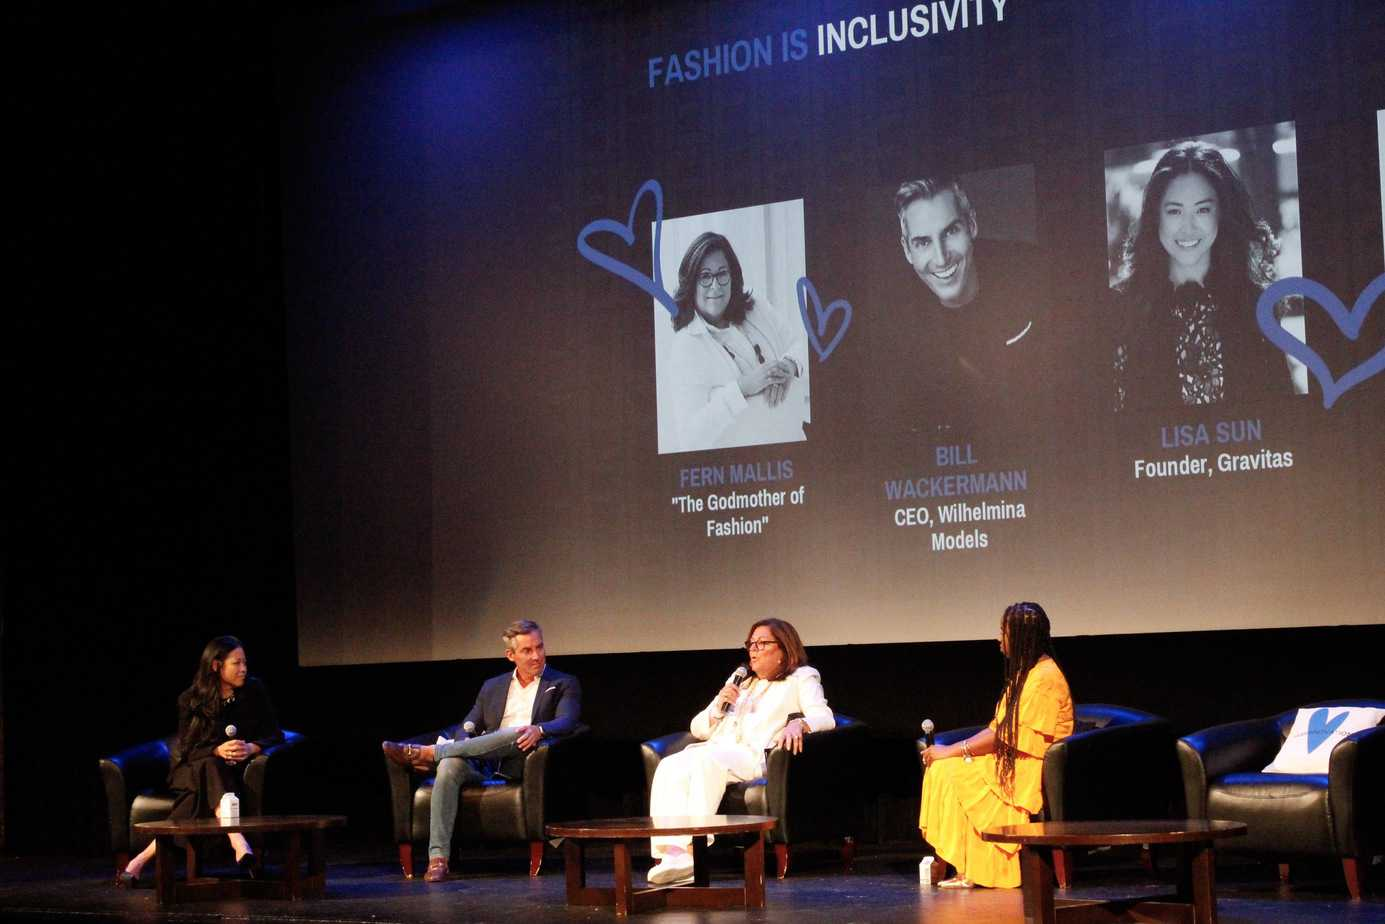 Fern Mallis - FASHINNOVATION